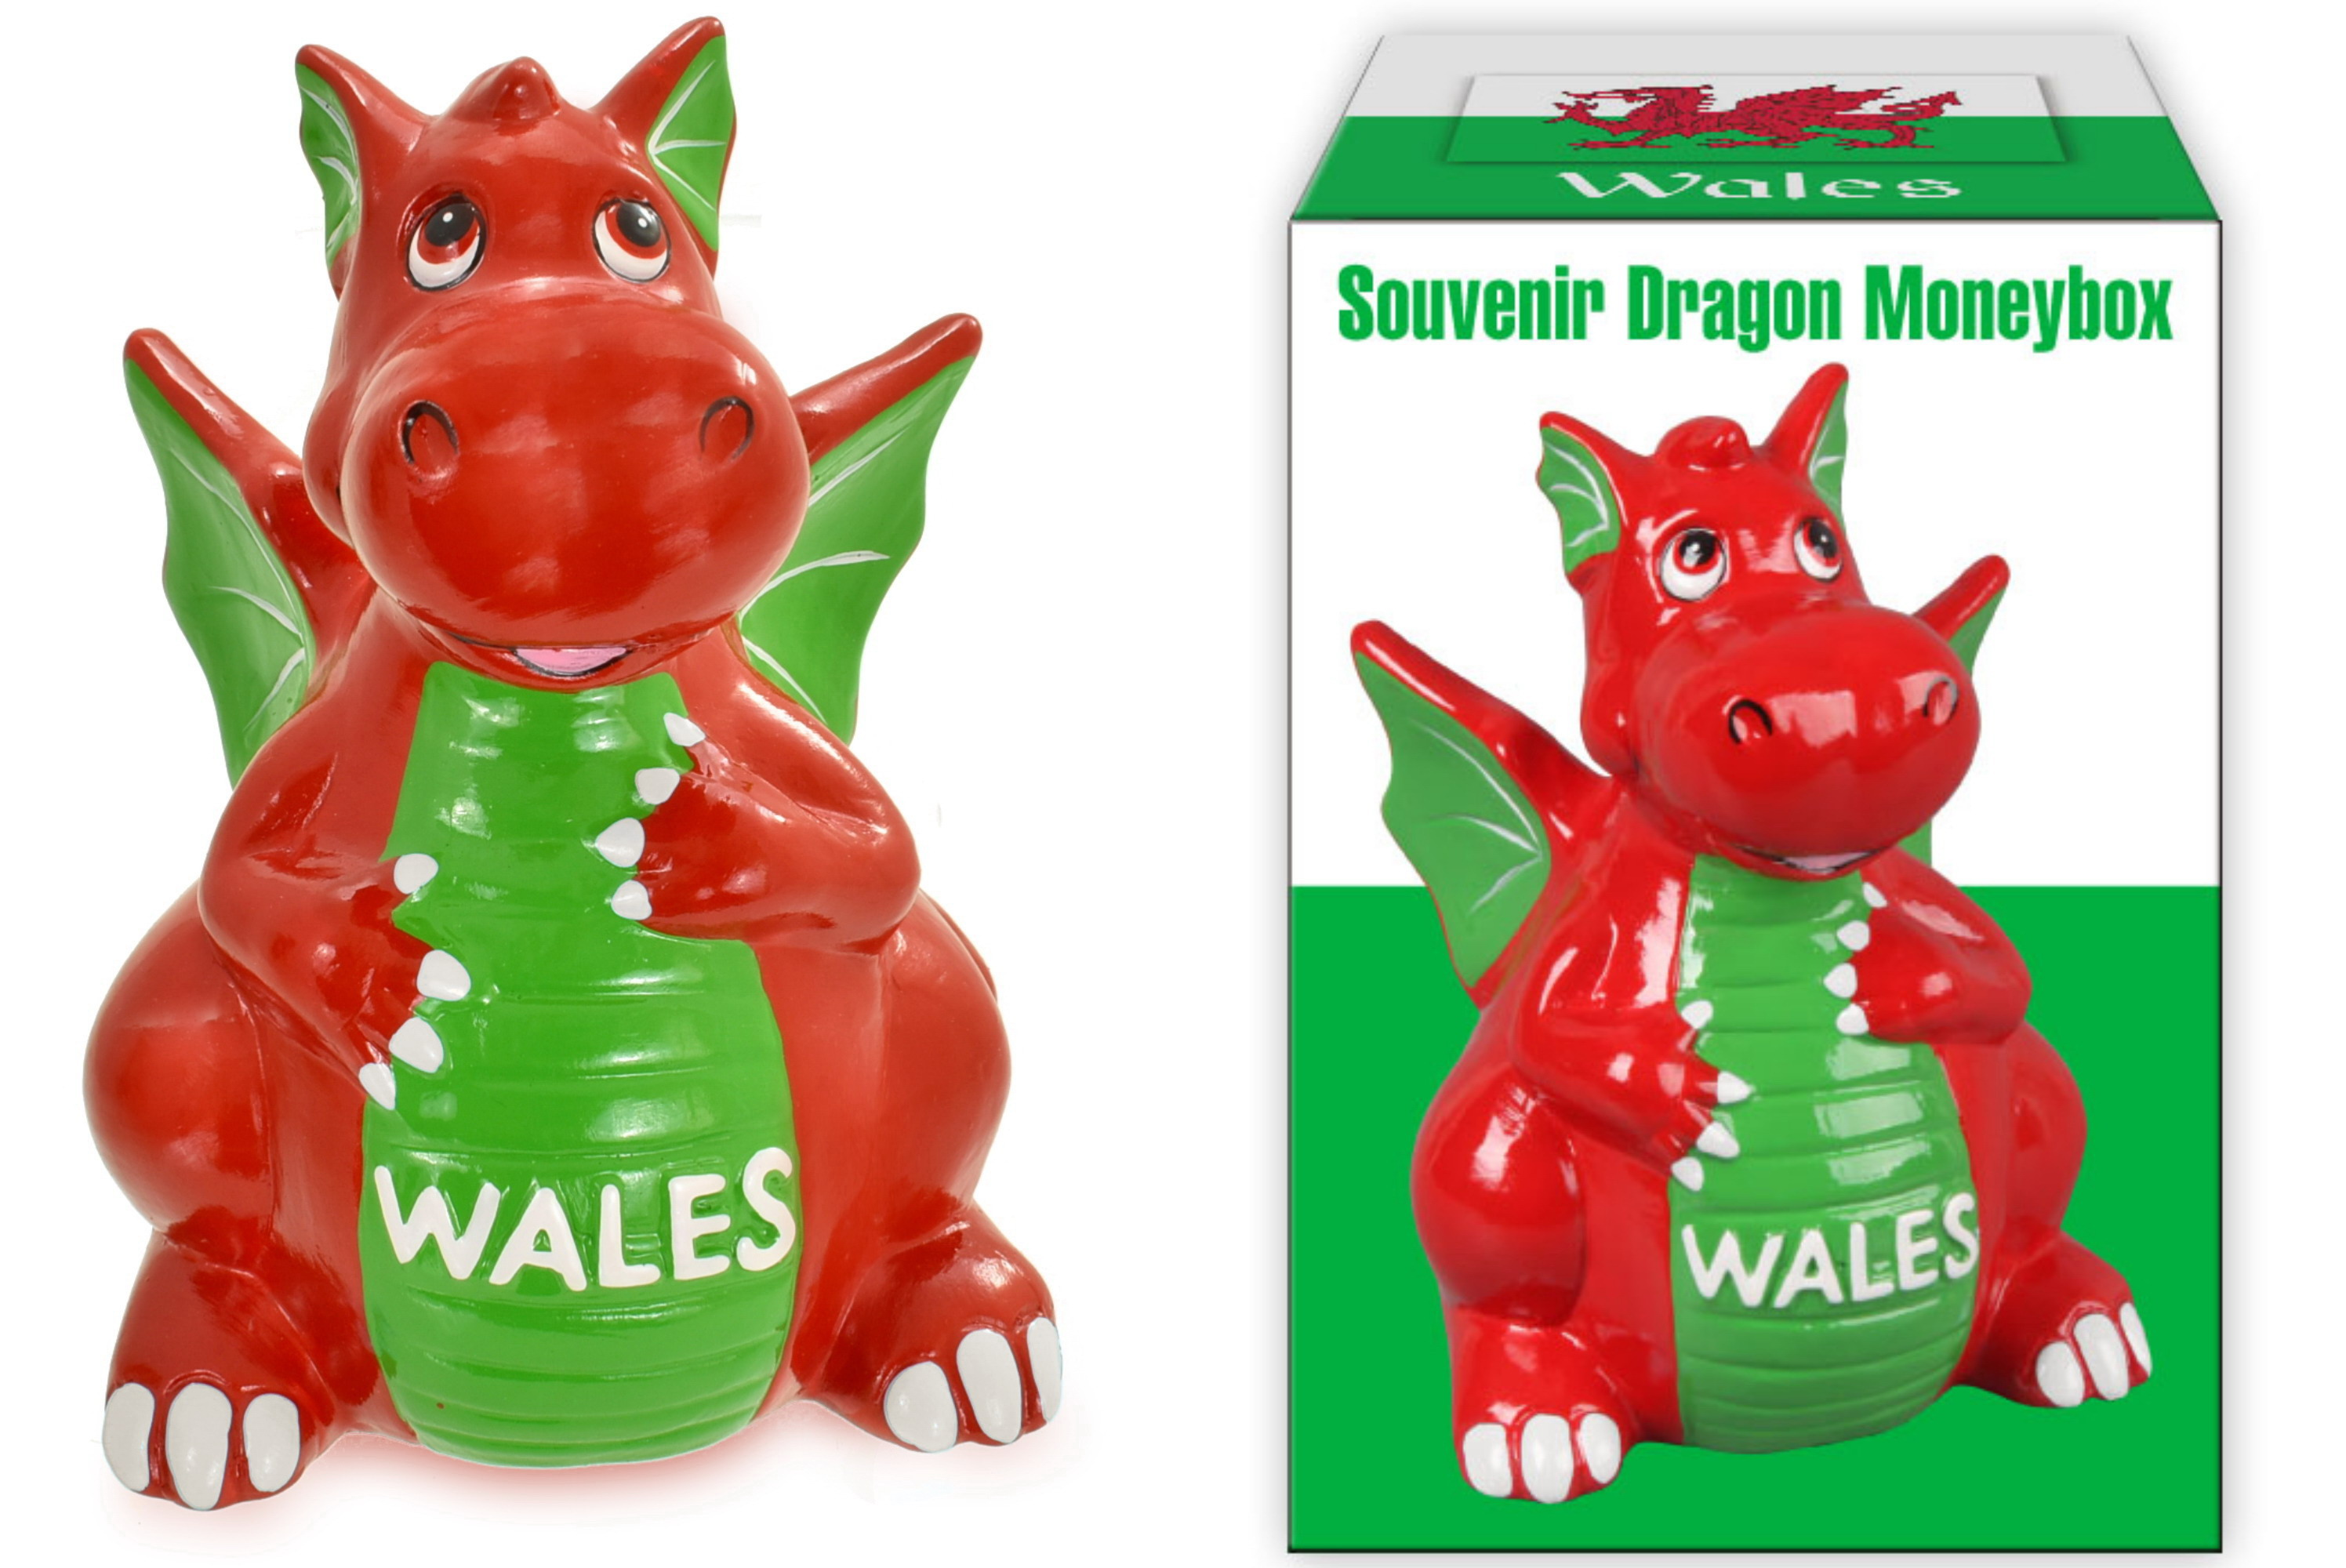 14cm Wales Dragon Moneybox In Colour Box